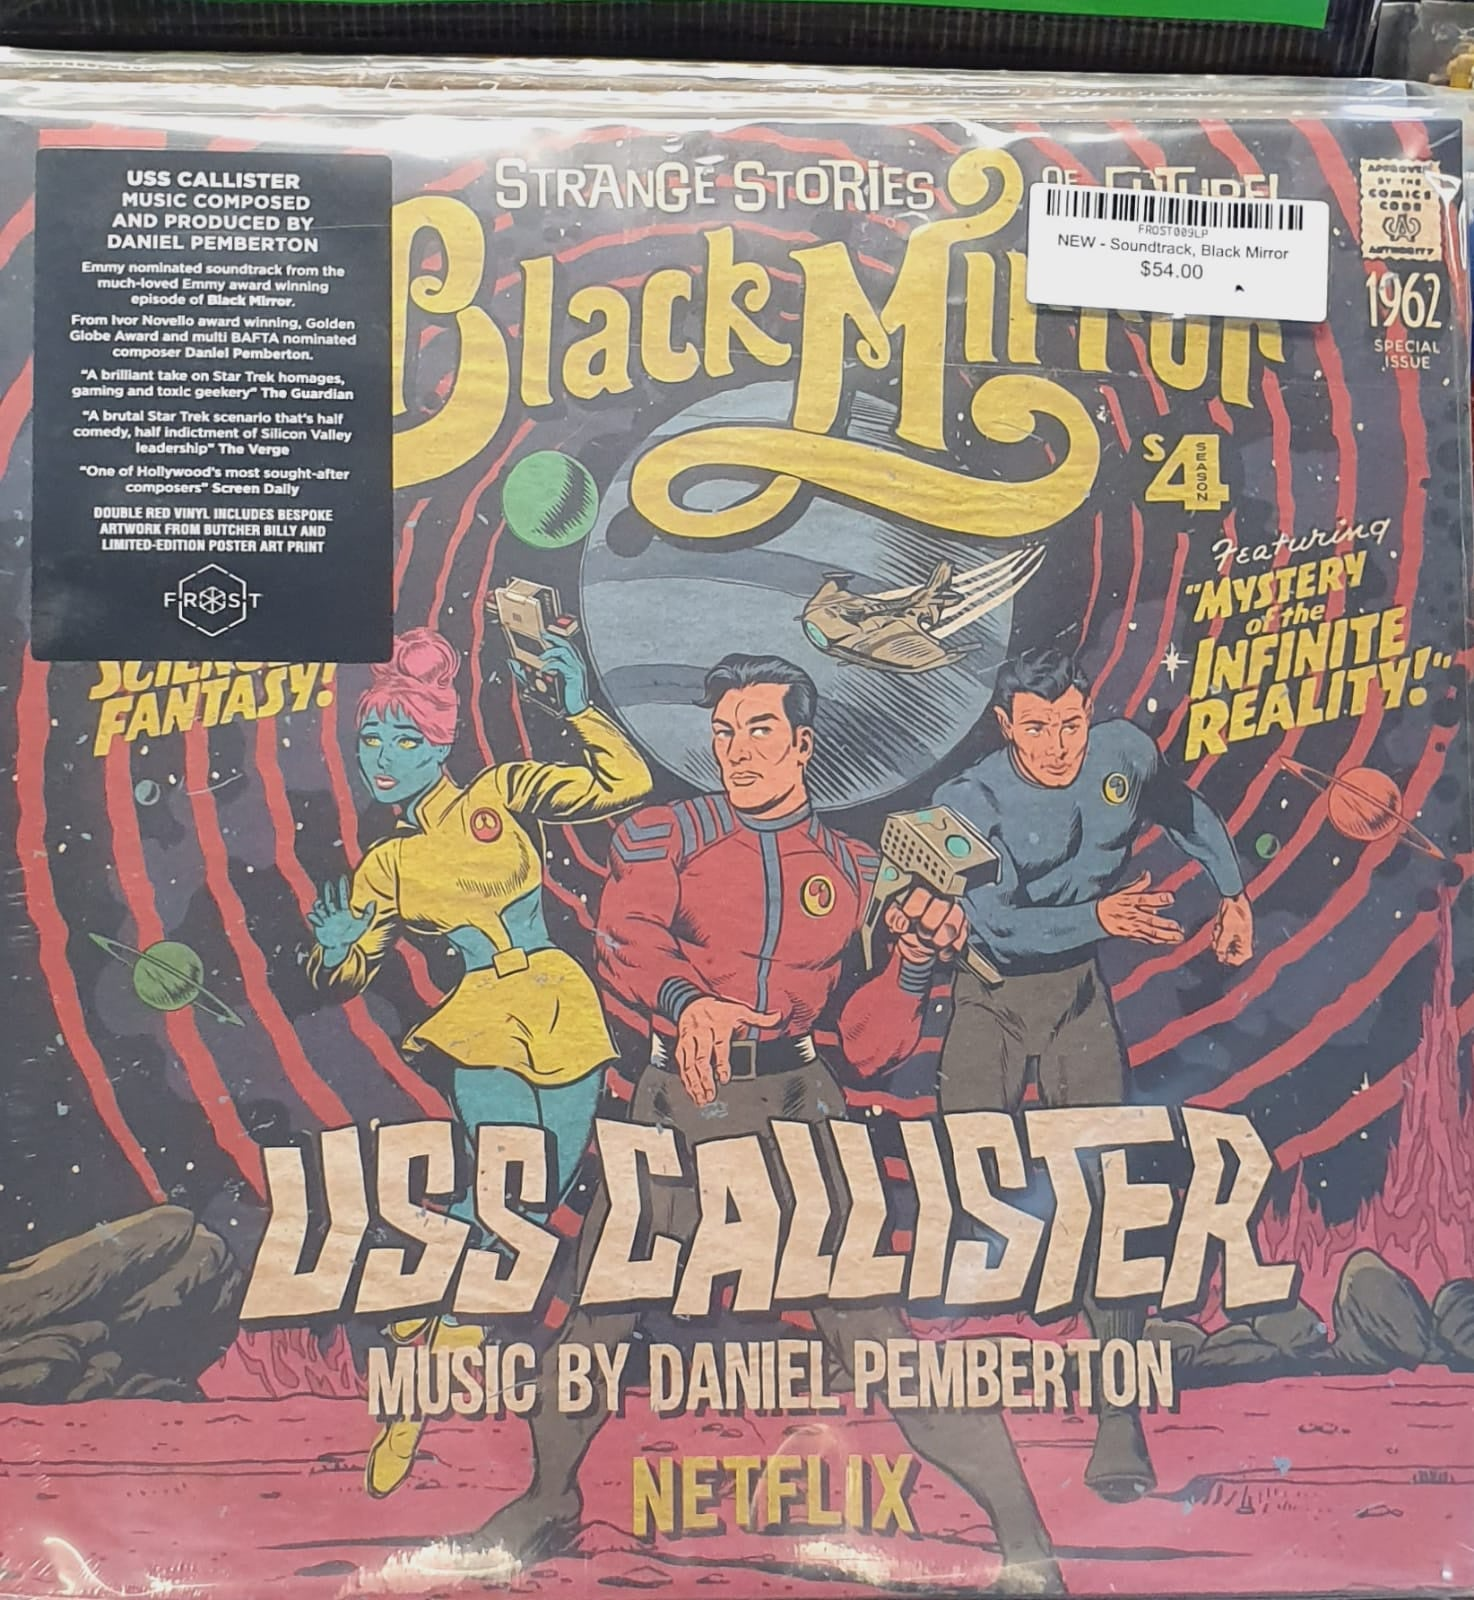 NEW - Soundtrack, Black Mirror - USS Callister (Original TV Soundtrack)  Red Vinyl